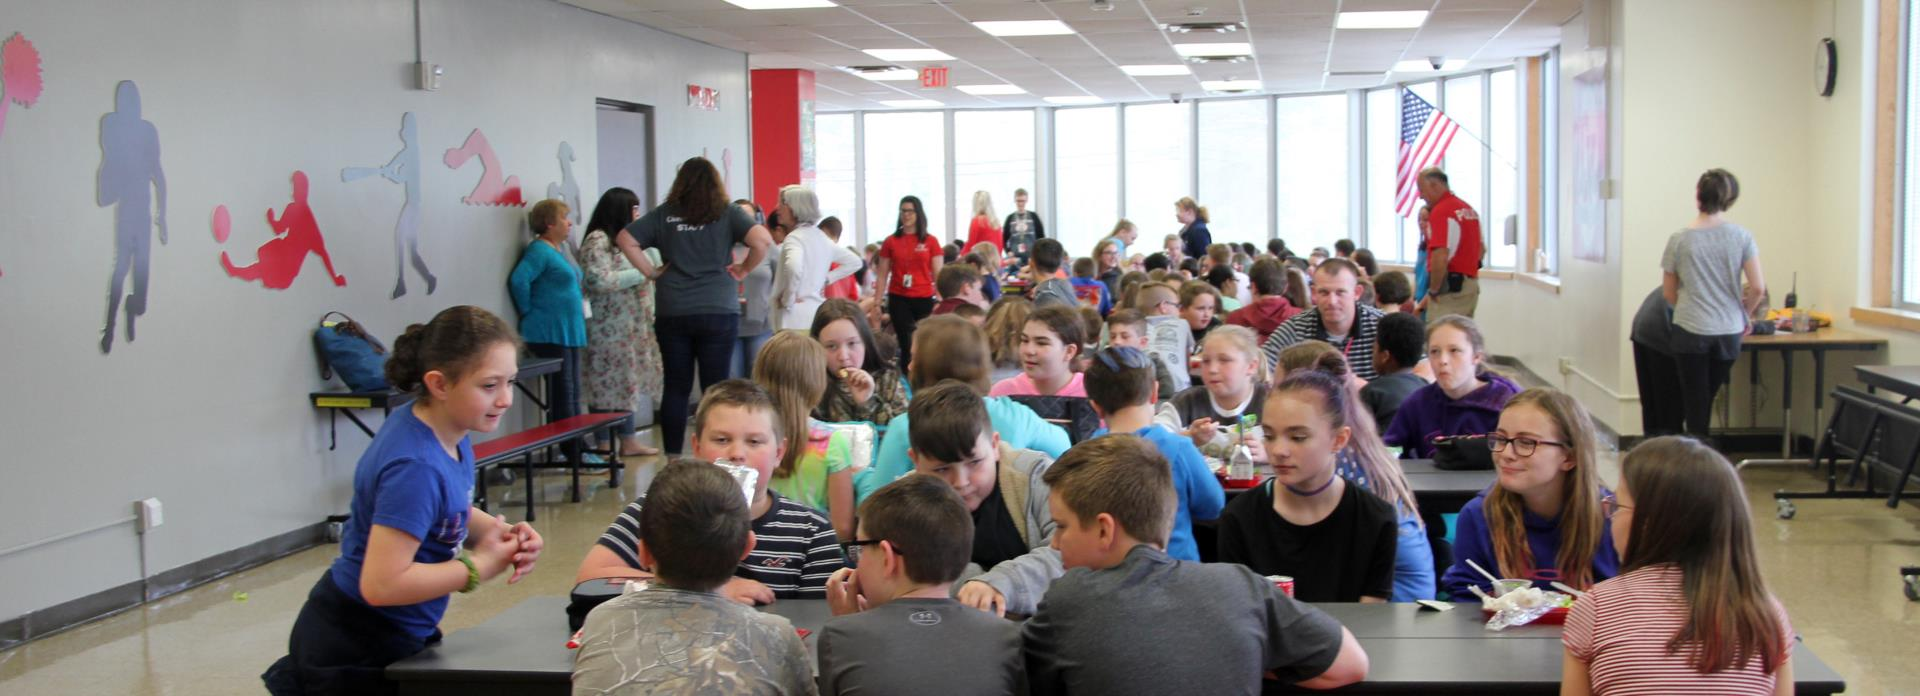 wide shot of students eating in cafeteria